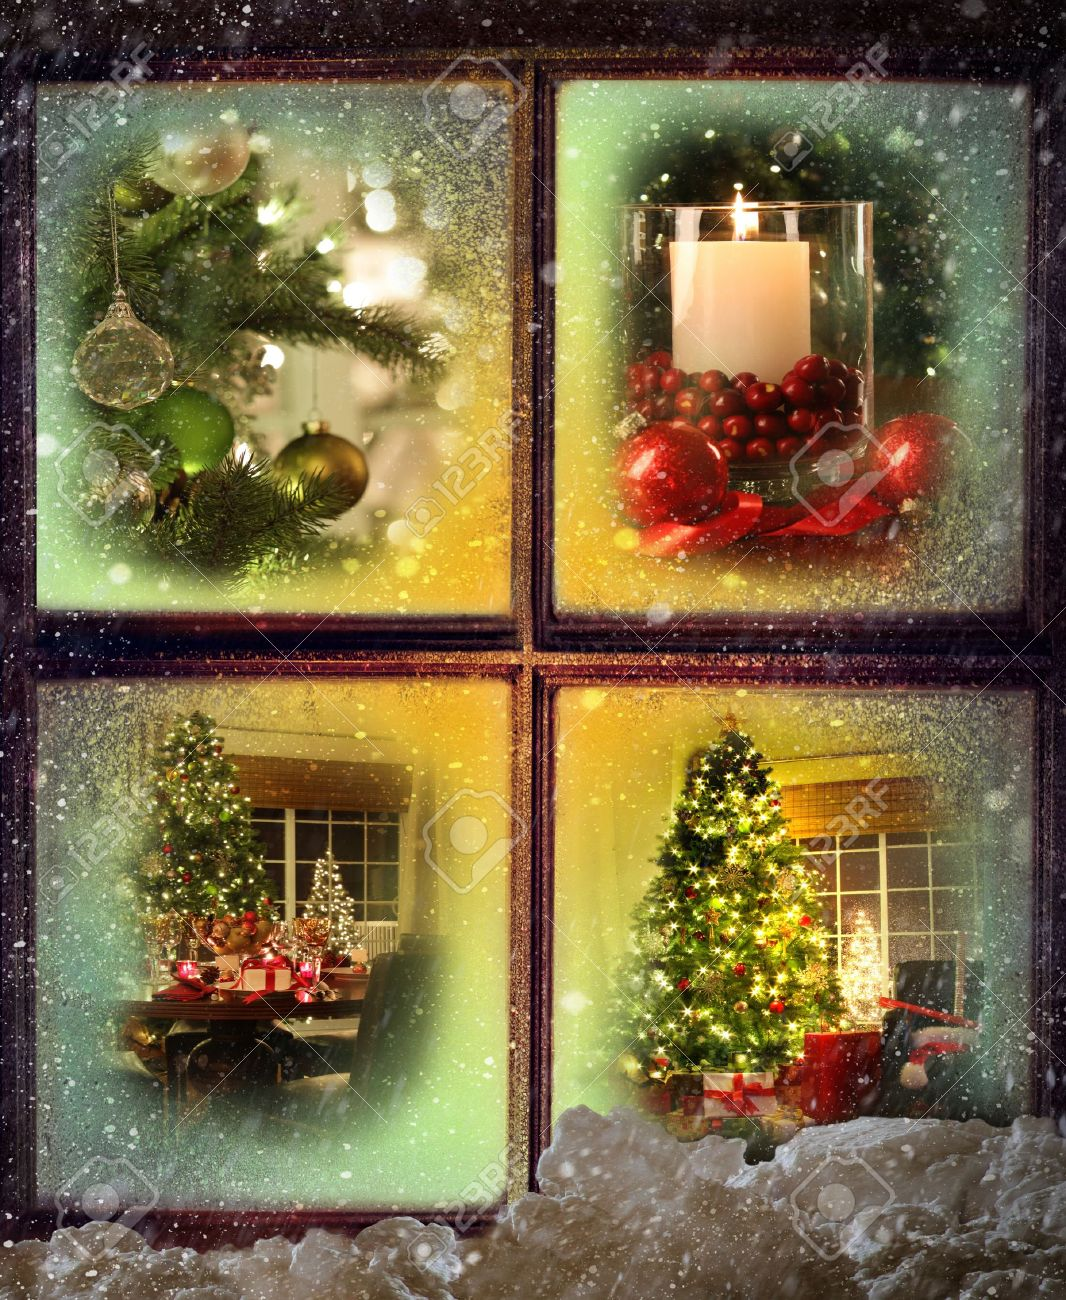 Vignettes of Christmas scenes seen through a snowy wooden window Stock Photo - 11453412